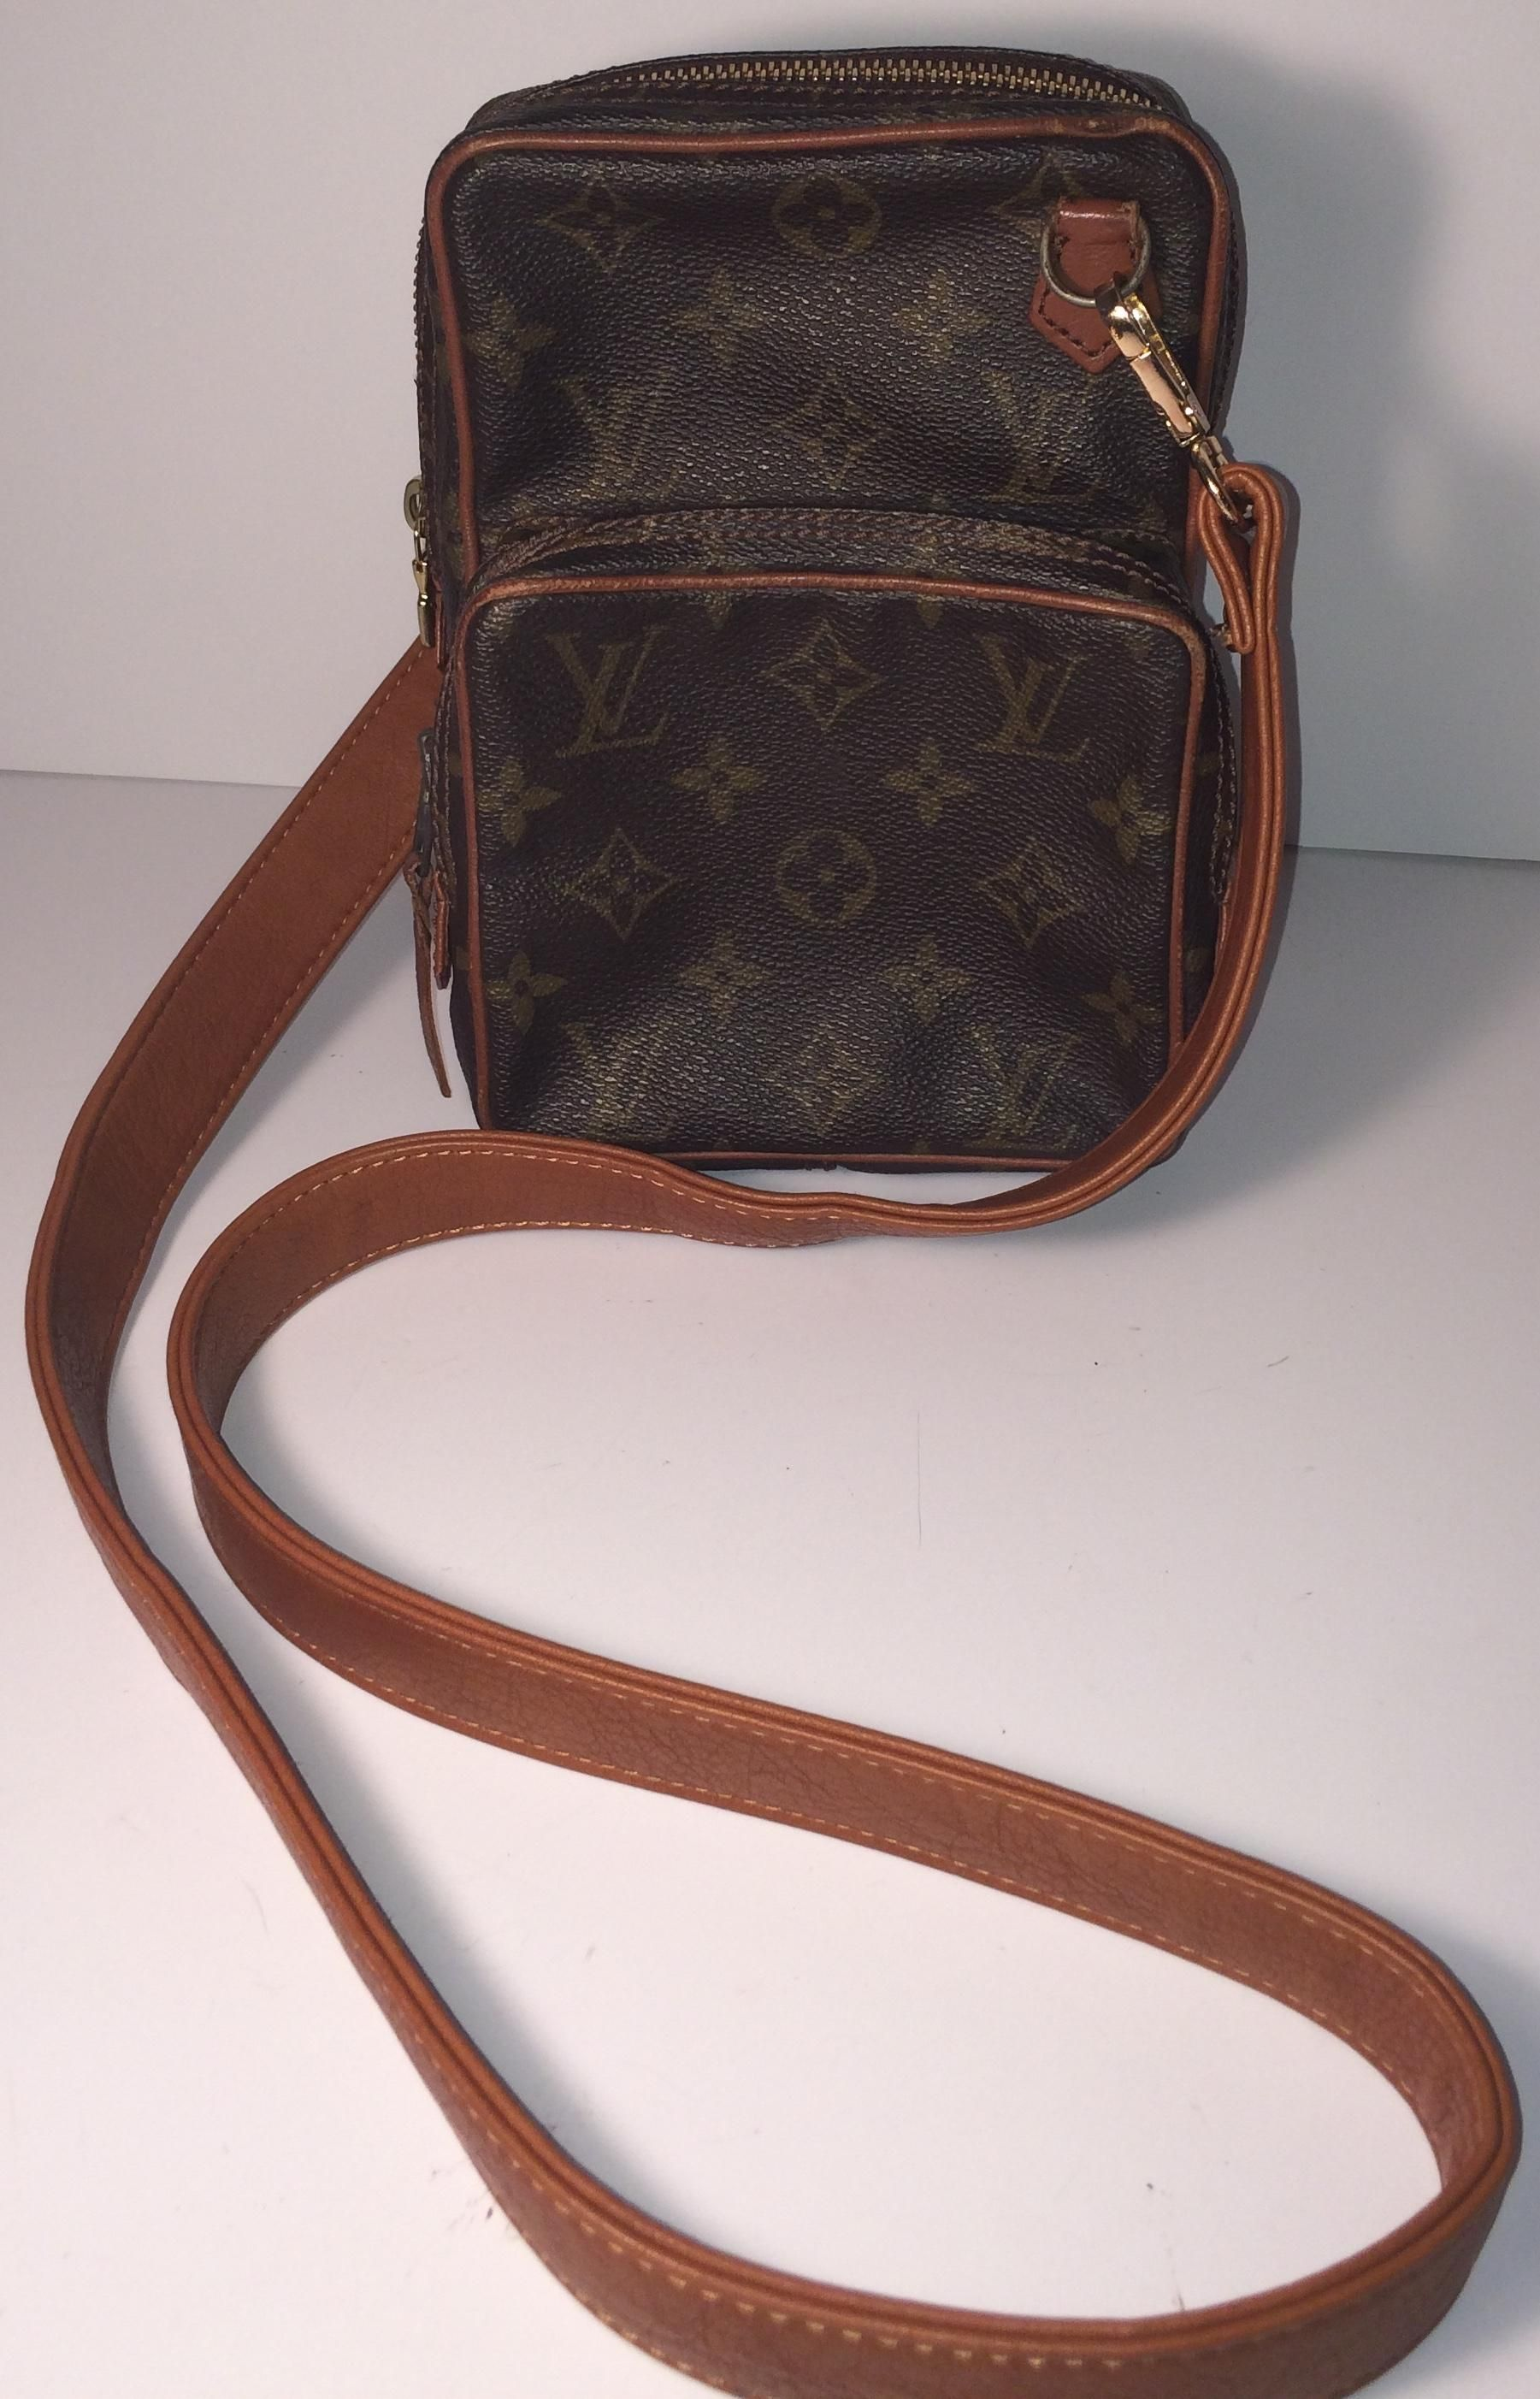 61a855cbfa6d Louis Vuitton Mini Amazon 862 With Leather Strap And Lv Charm Brown  Monogram Cross Body Bag. Get the trendiest Cross Body Bag of the season!